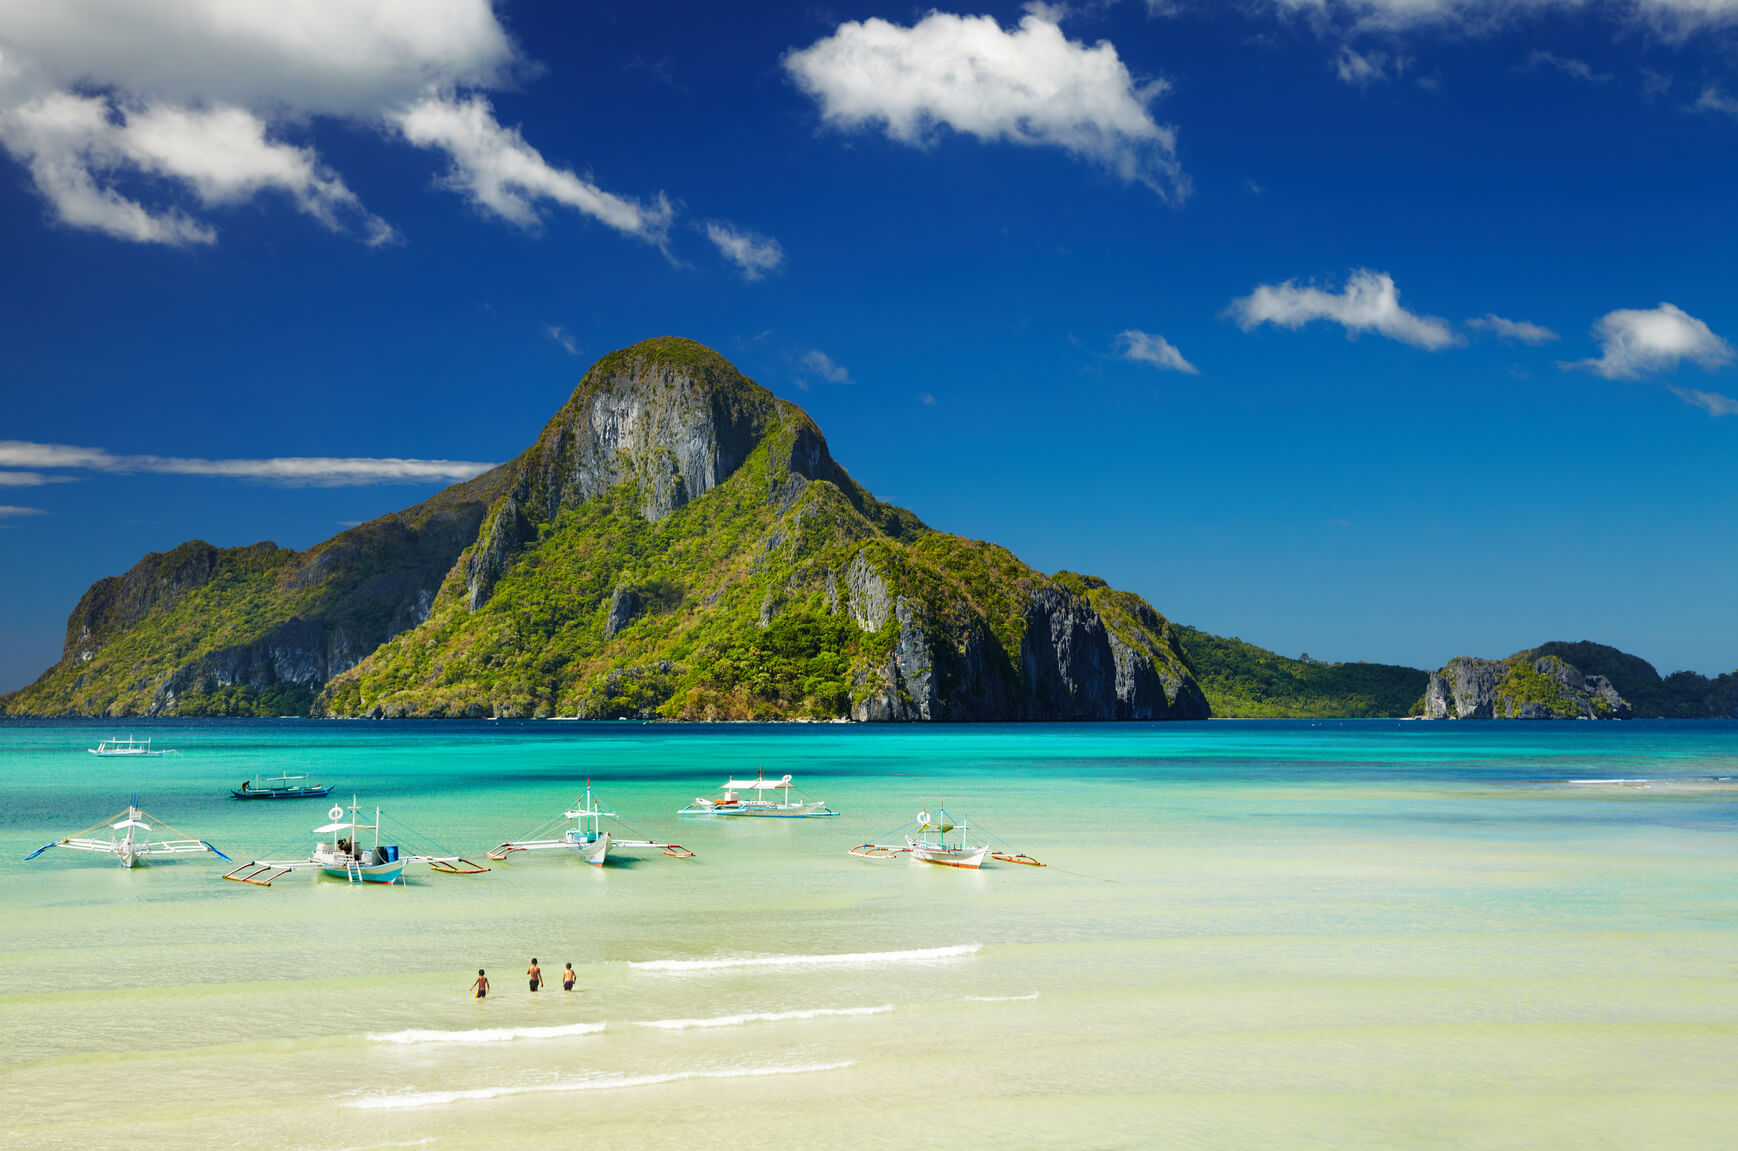 New York to Manila, Philippines for only $507 roundtrip (Aug-Dec dates)